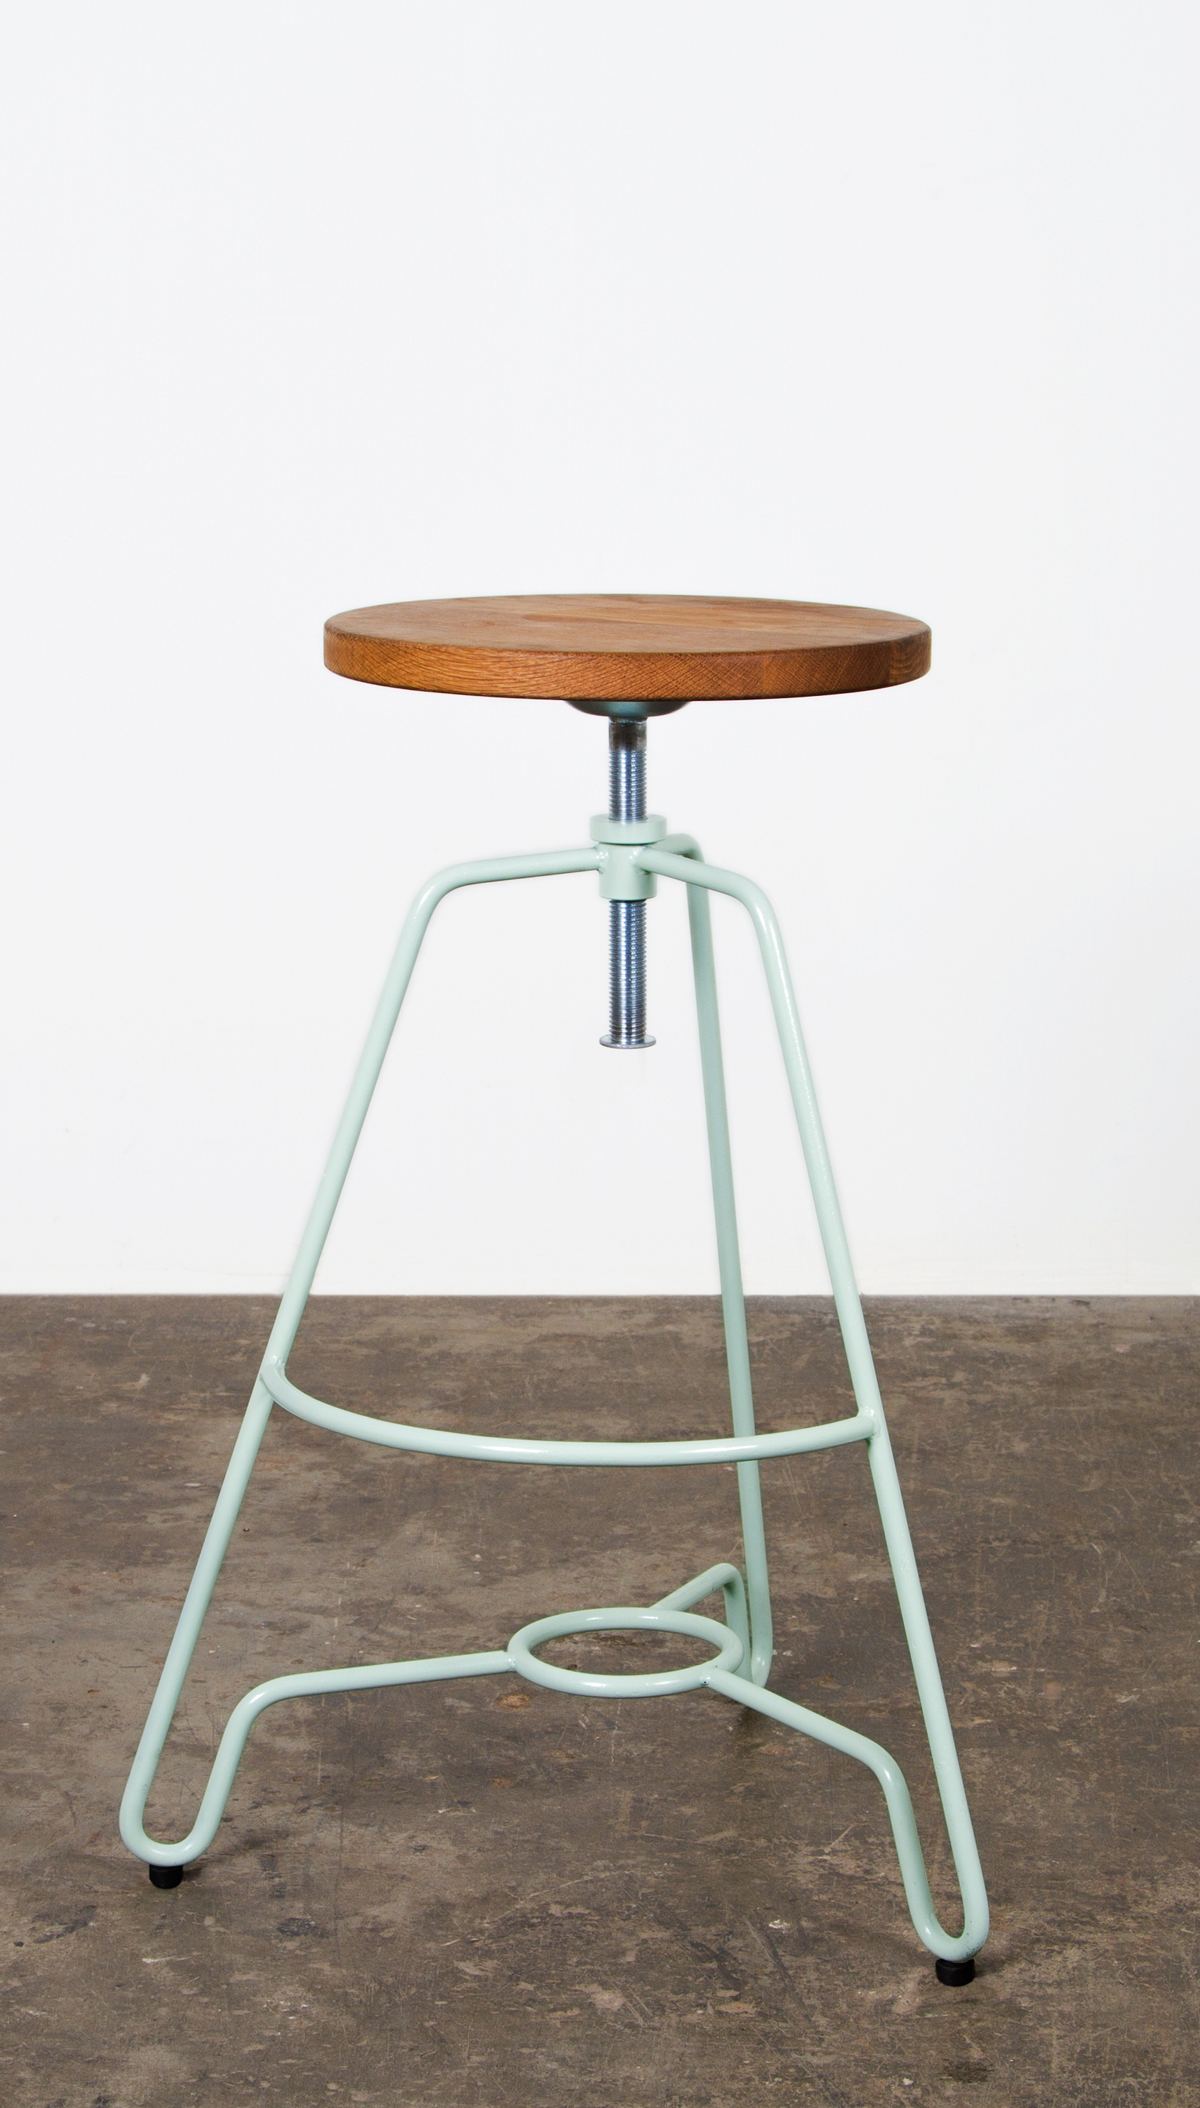 Industrial style bar stool with wooden top and ivory white metal stand